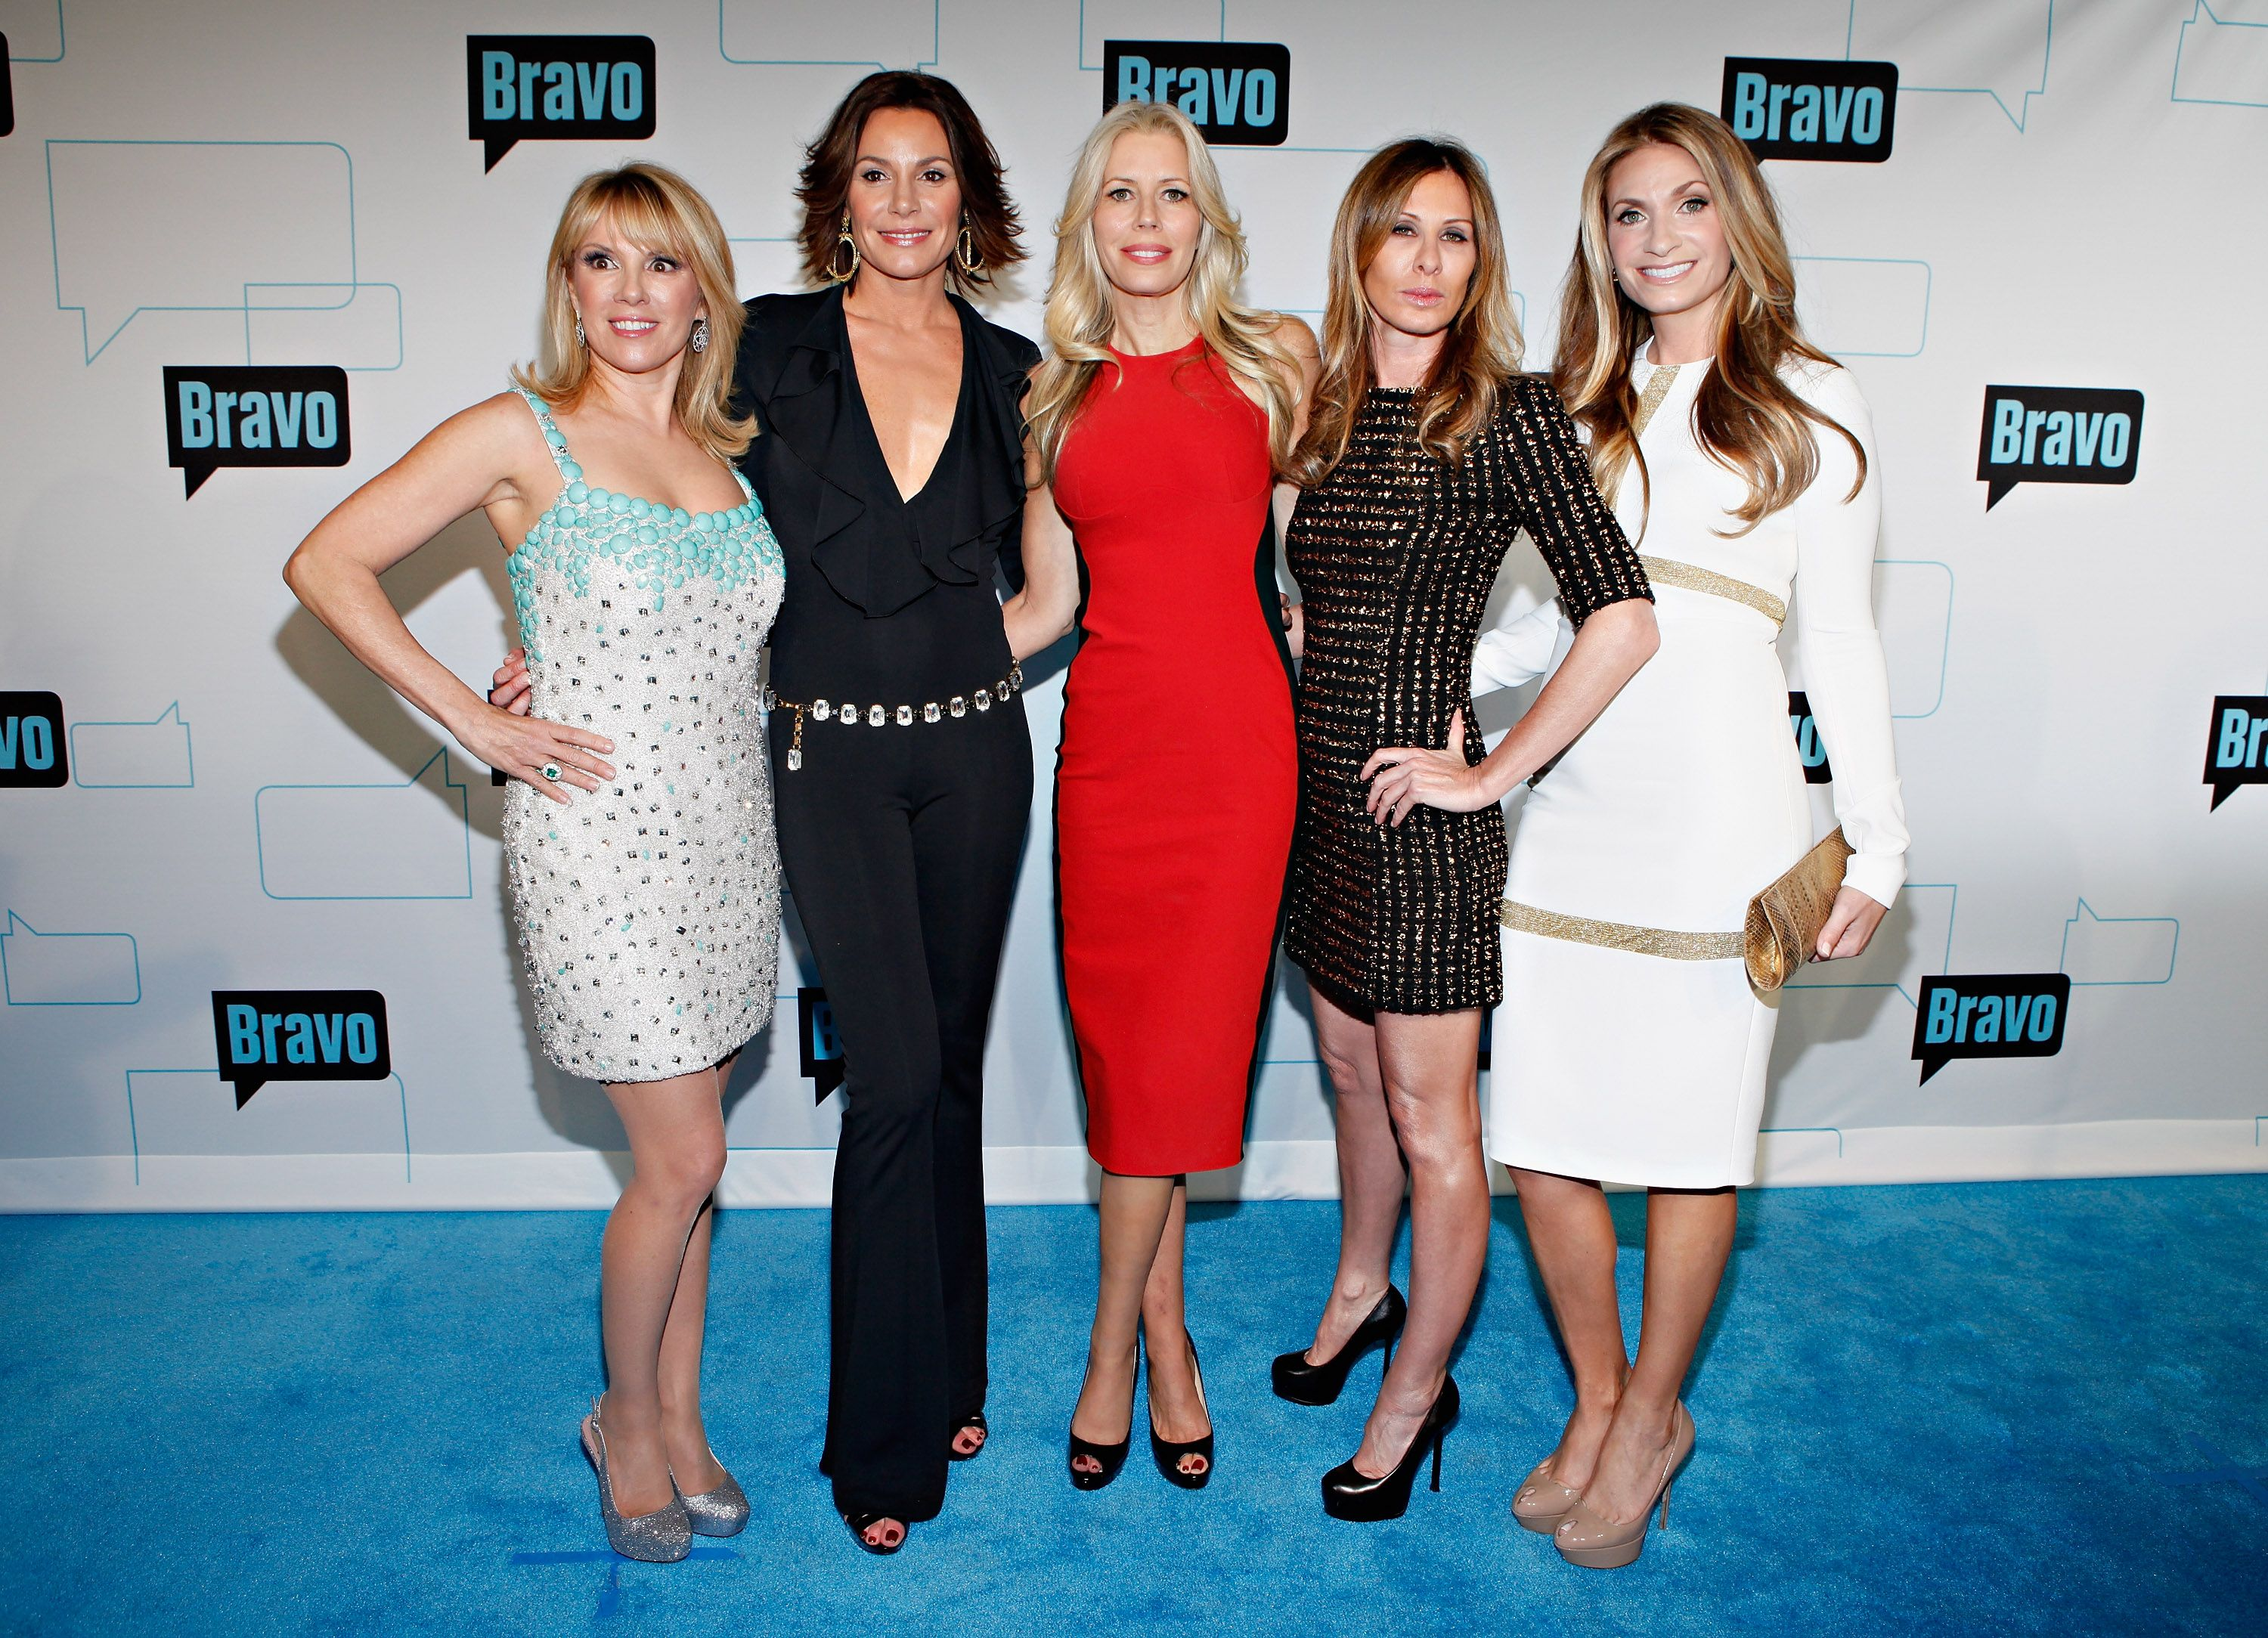 The 'RHONY' cast wears dresses and stands on a blue carpet.